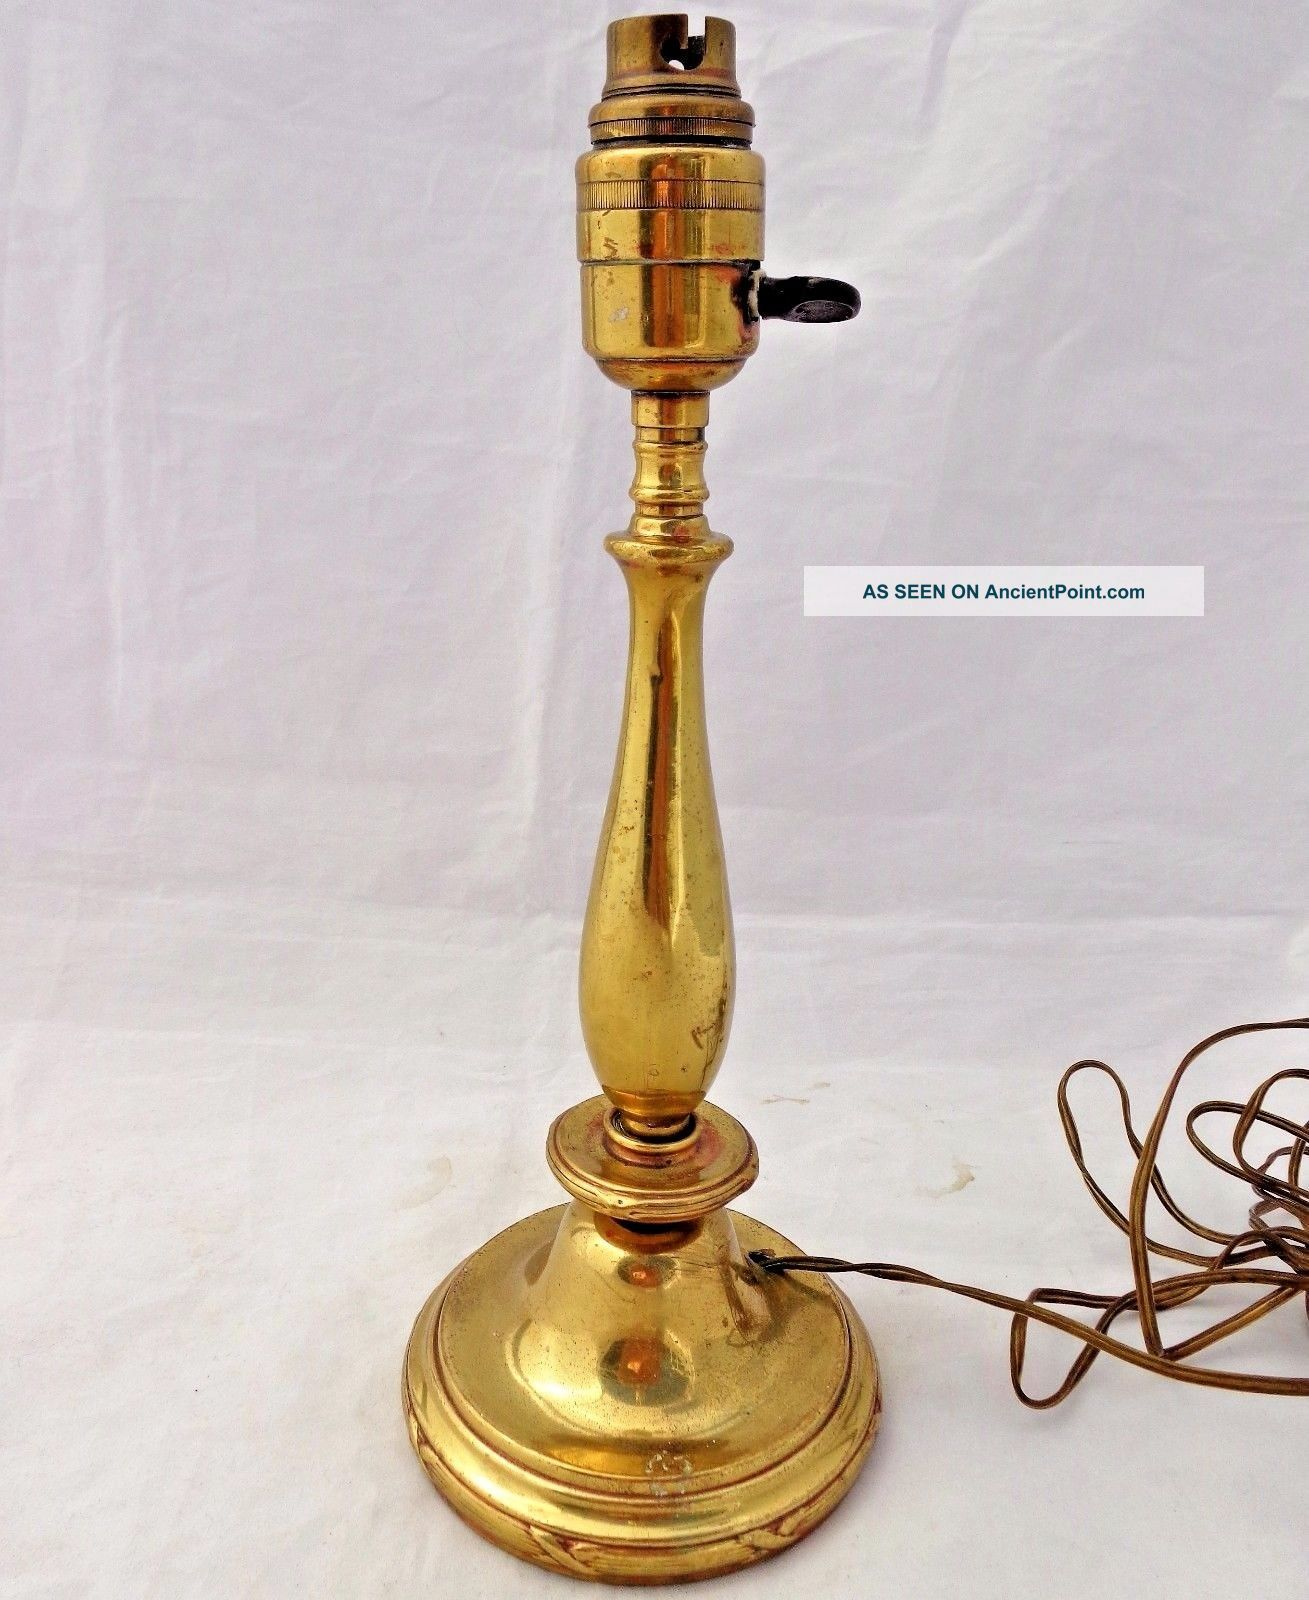 Antique Edwardian Brass Candlestick Shape Table Lamp Base 1900 - 1920 12 3/4 In Edwardian (1901-1910) photo